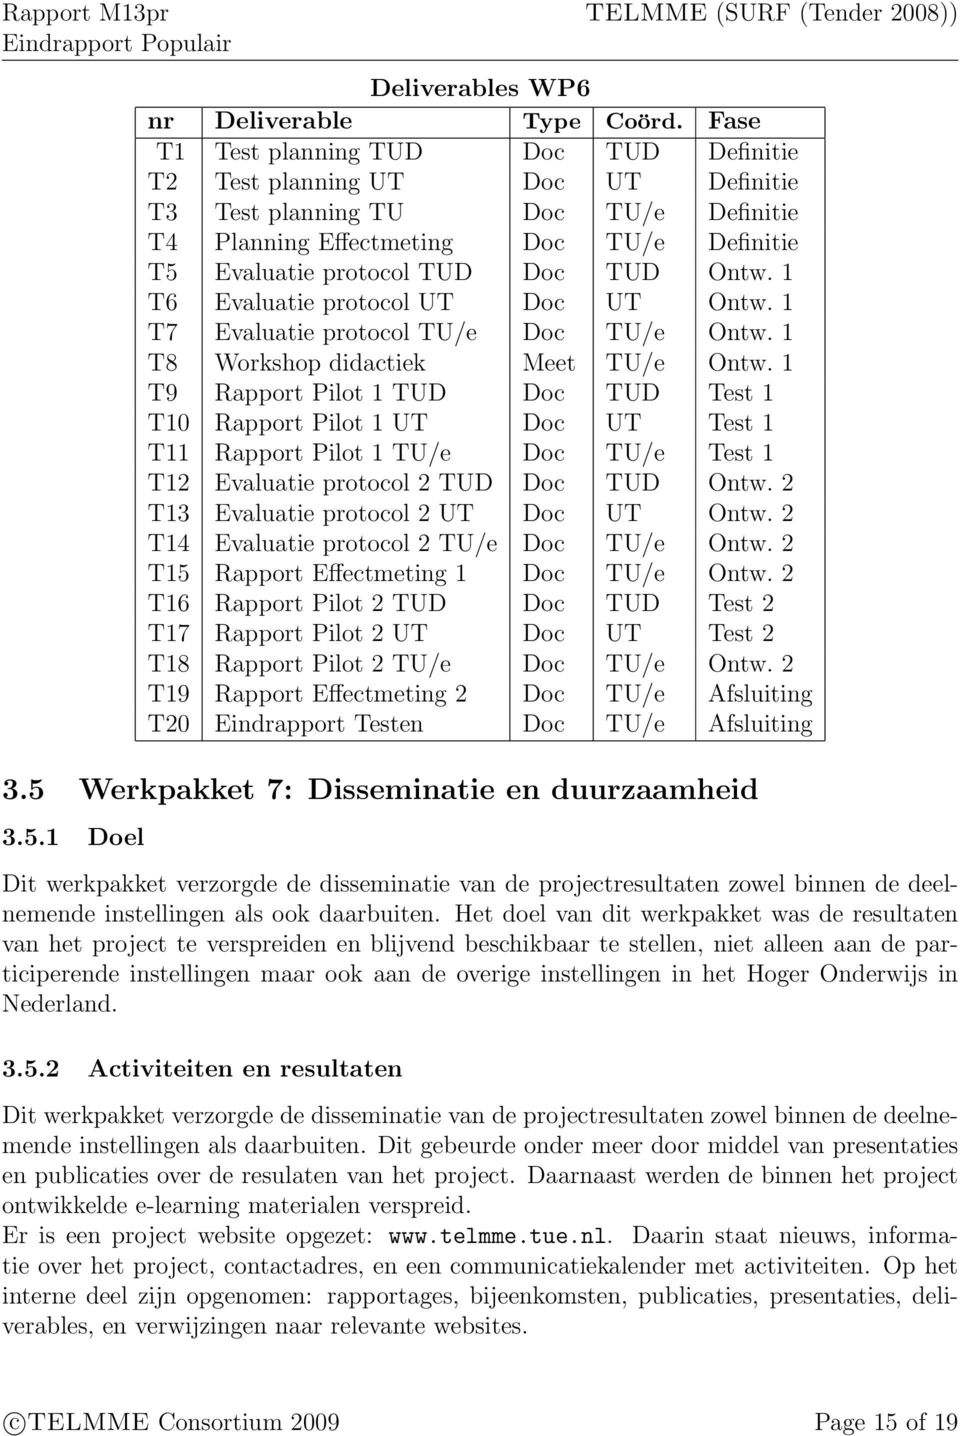 Ontw. 1 T6 Evaluatie protocol UT Doc UT Ontw. 1 T7 Evaluatie protocol TU/e Doc TU/e Ontw. 1 T8 Workshop didactiek Meet TU/e Ontw.